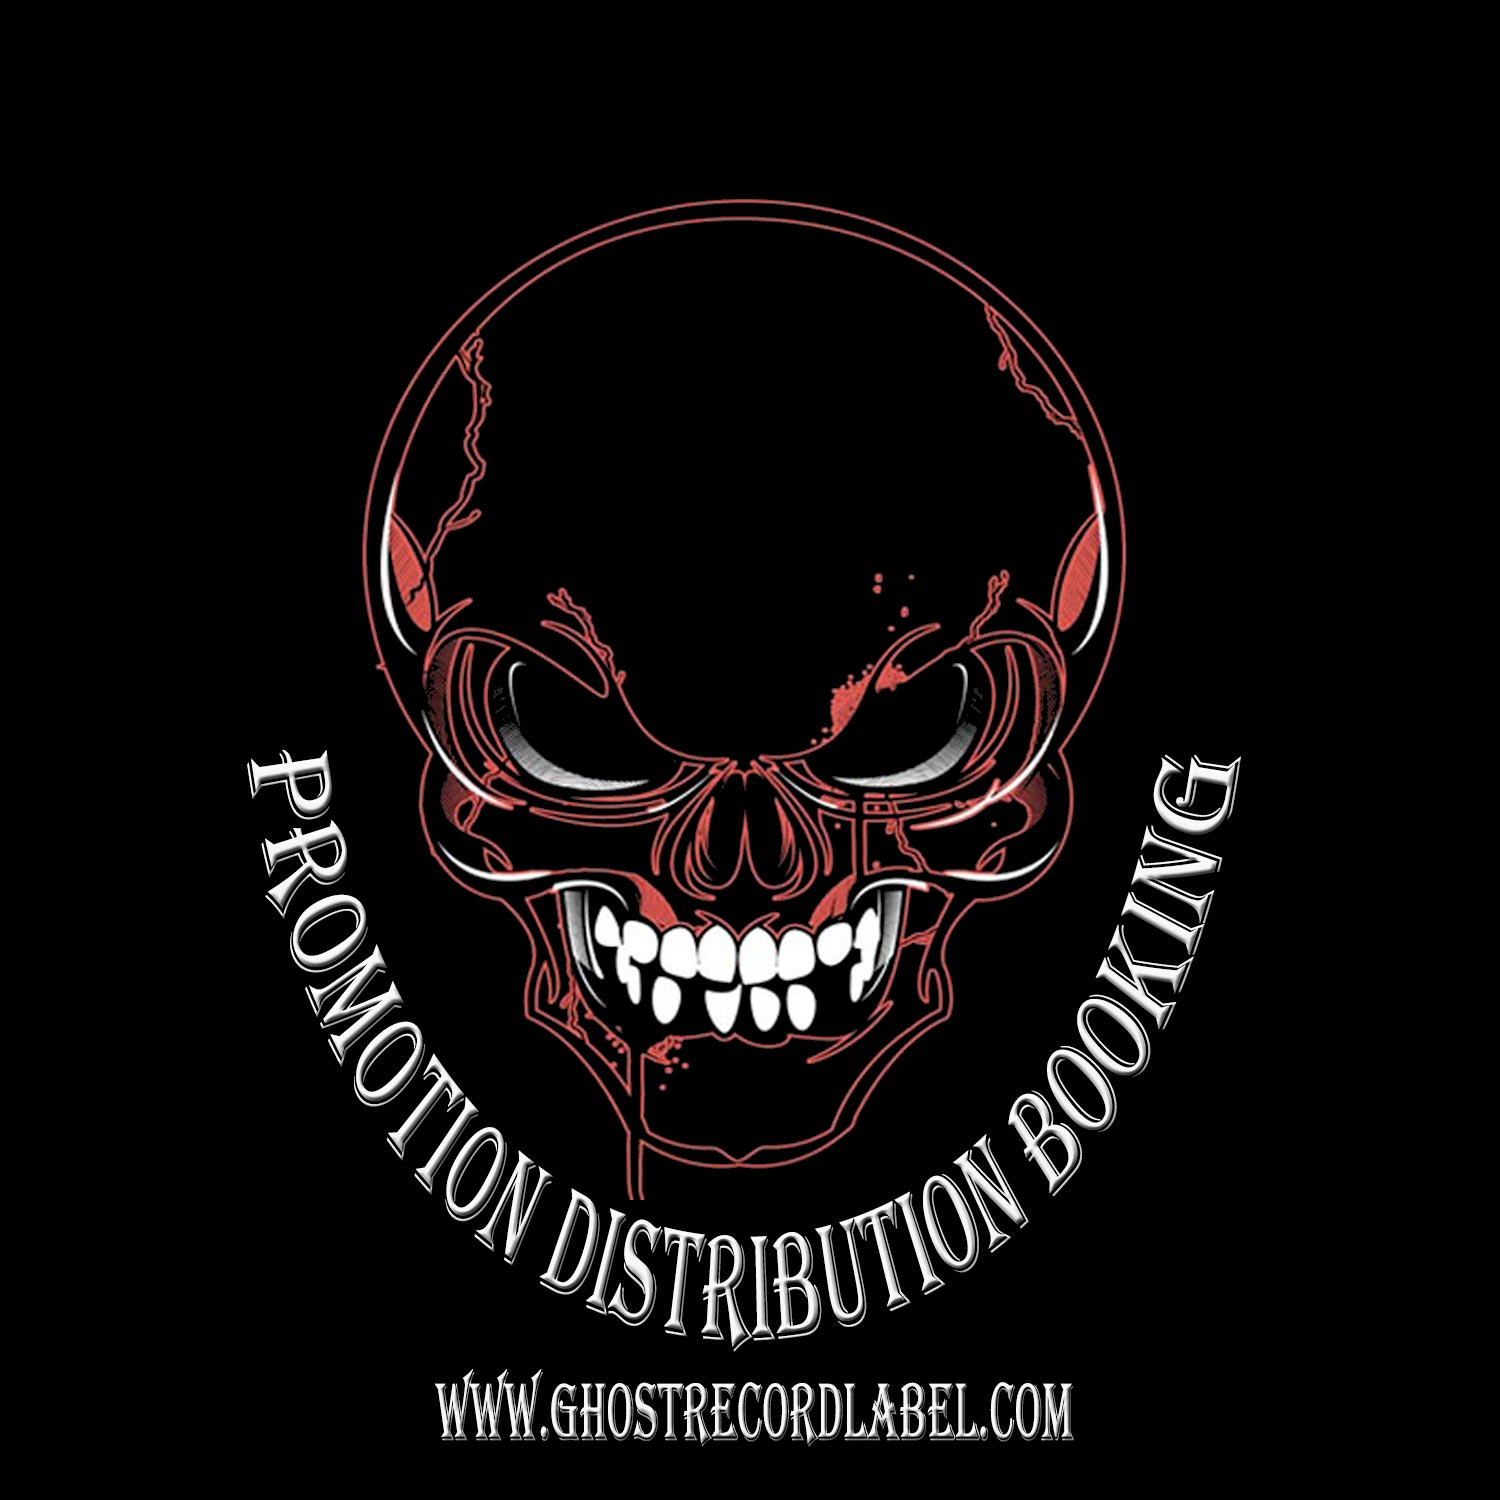 Ghost Record Label